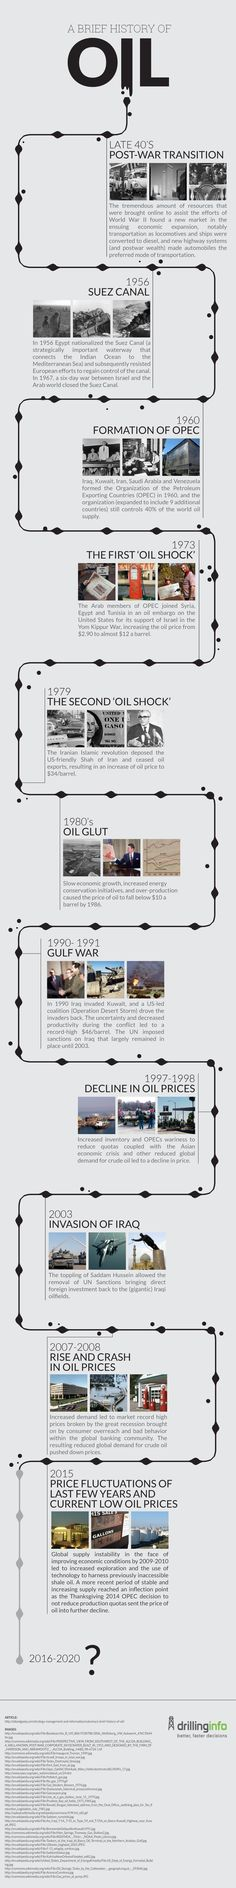 The History of Oil |Infographic| - Drillinginfo